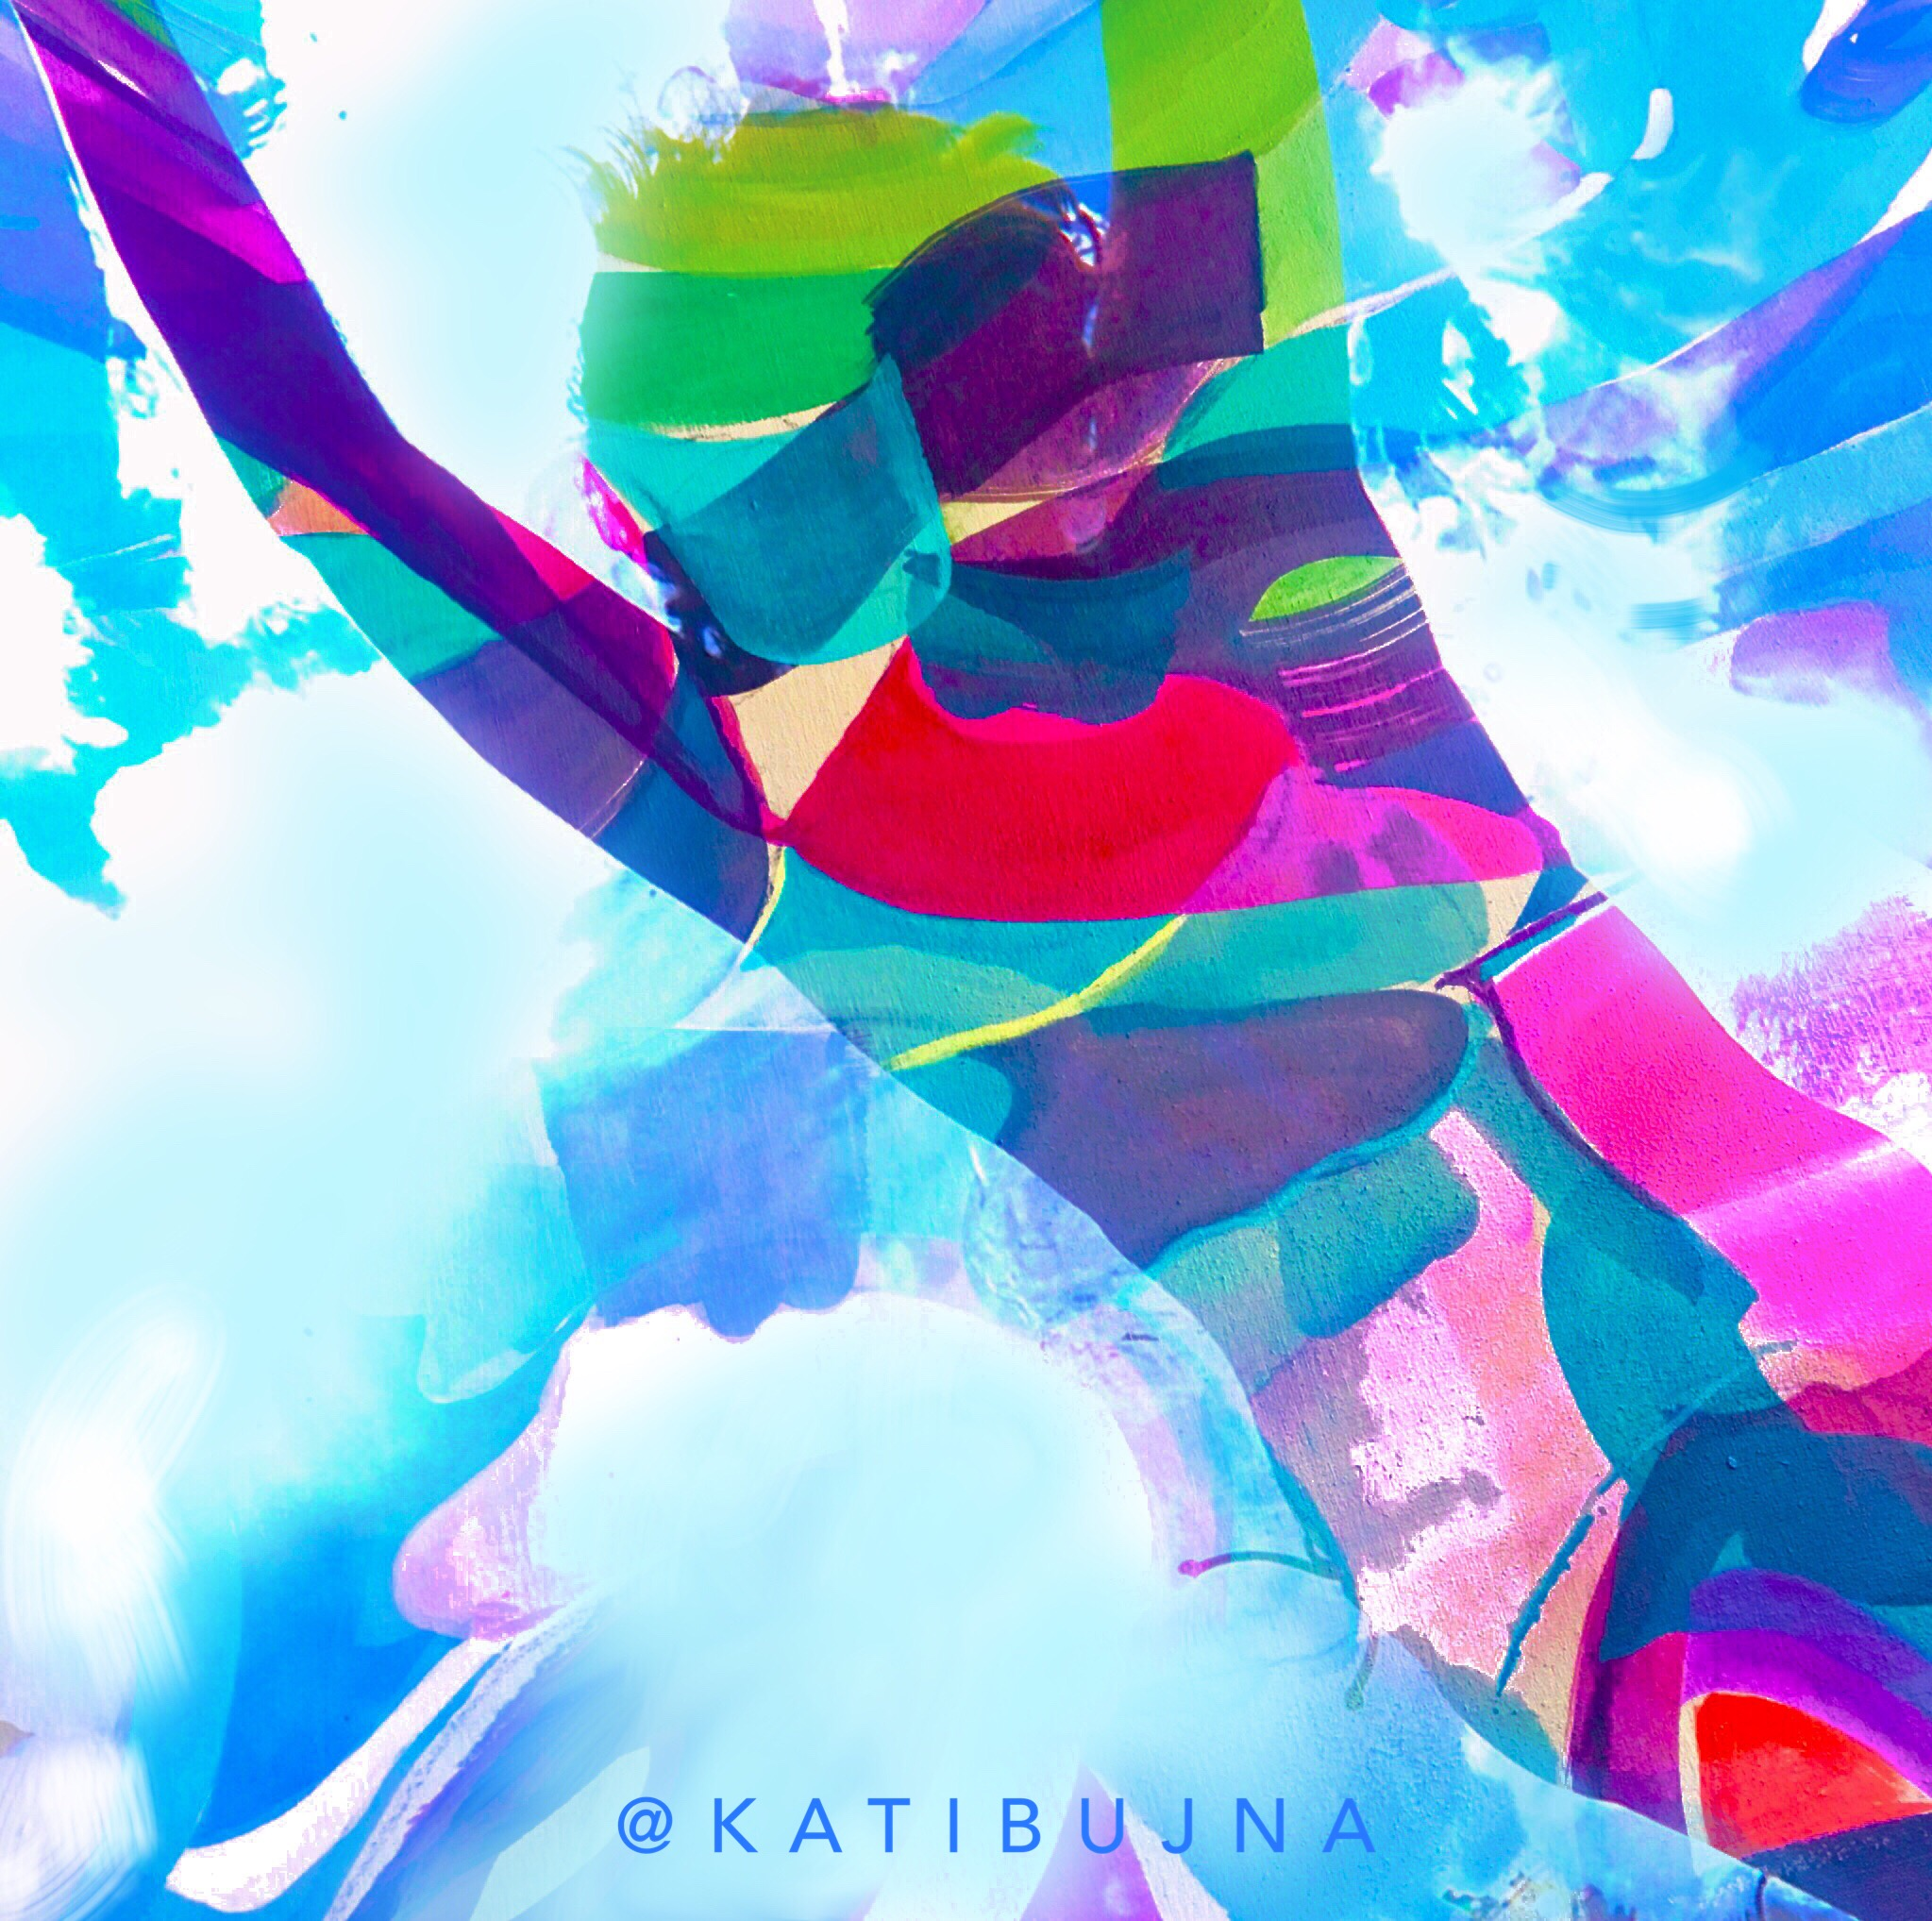 KatiBujna-Skyward1-Insta-PoolsAbstractFigure-2019.JPG